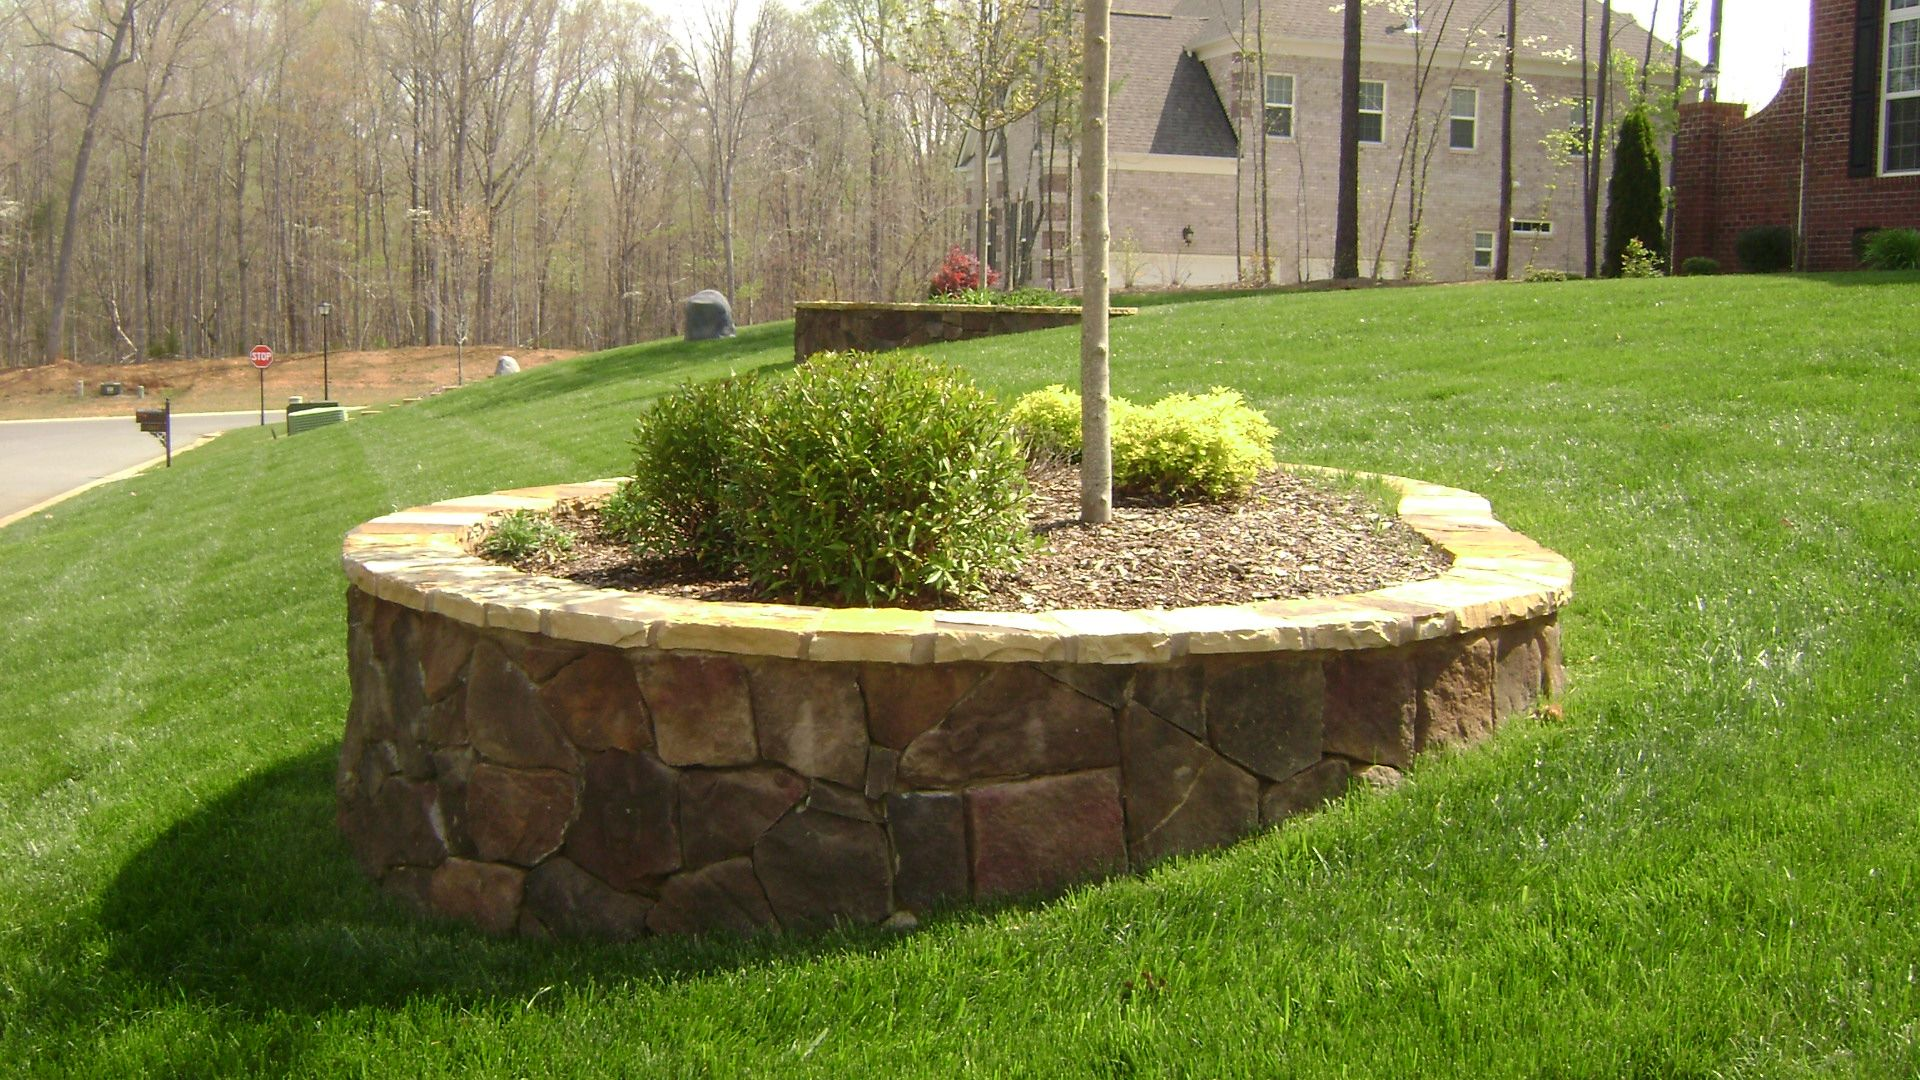 Here S A Custom Stone Planter In The Waxhaw Nc Area This Was Built Using A Concrete Base Cinder Stone Planters Front Yard Landscaping Landscape Edging Stone